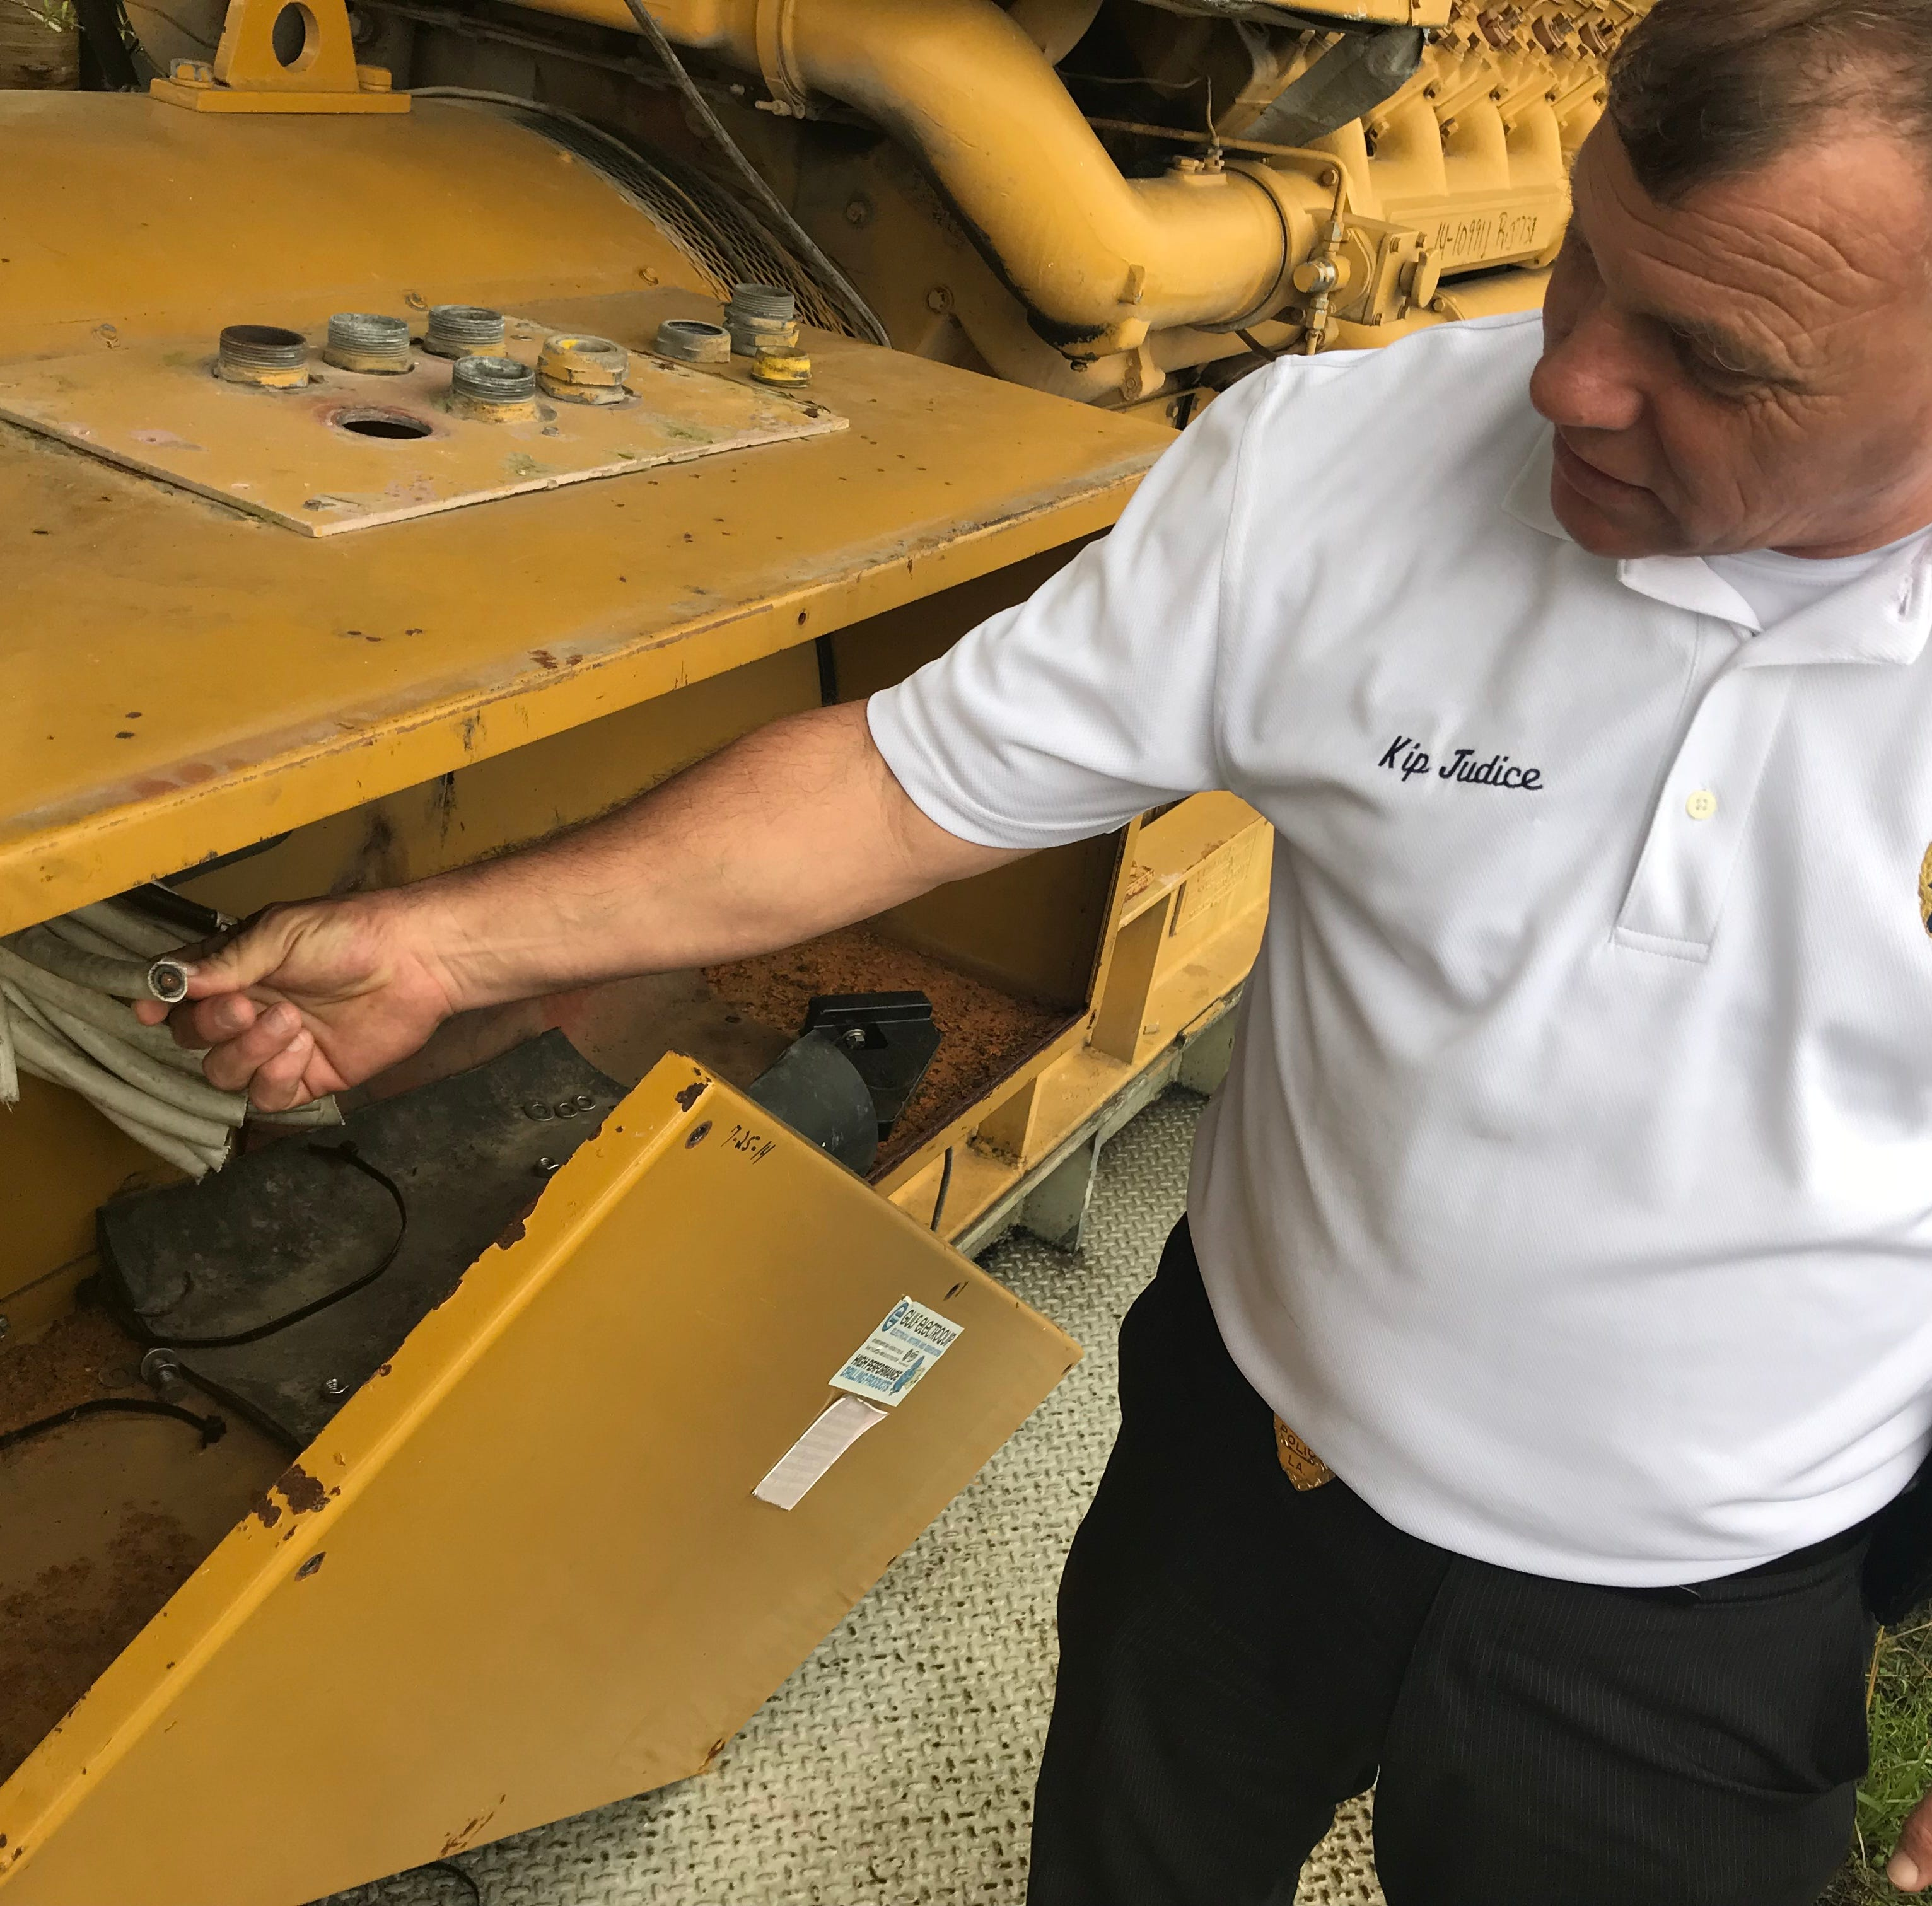 $1.2 million of oilfield equipment stolen in Duson; wanted suspect served 22 years for similar cases